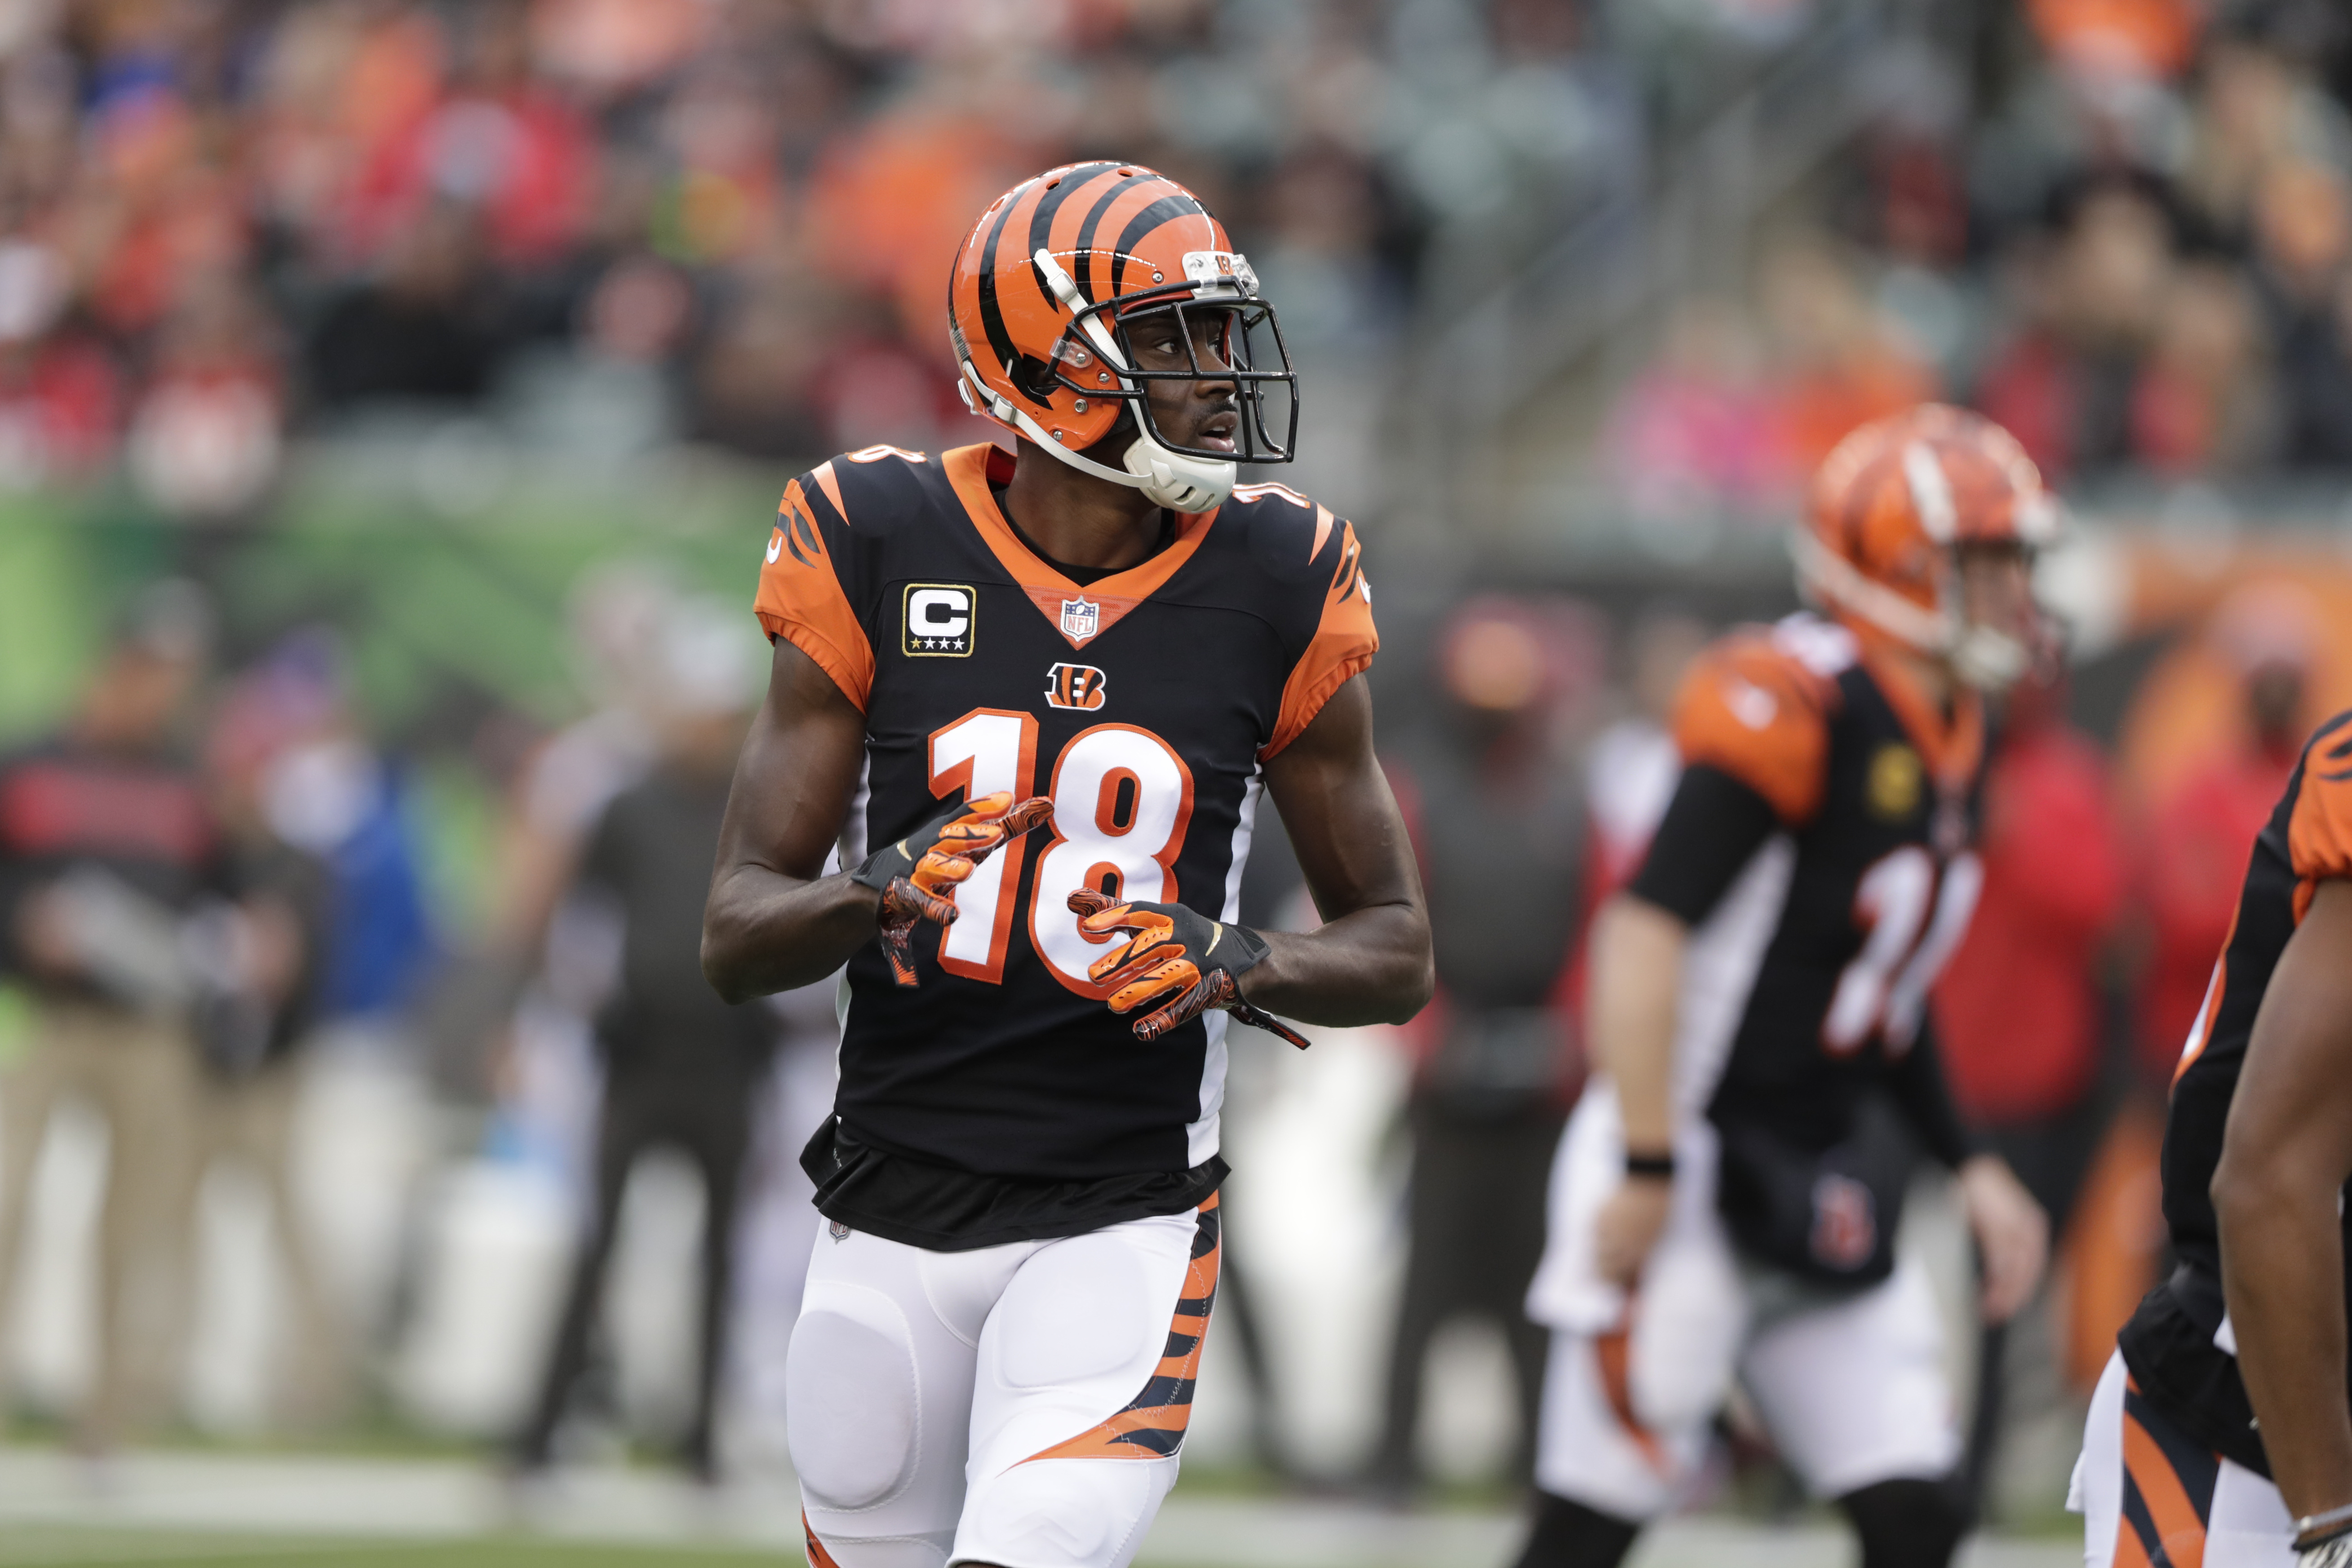 NFL trade rumors: Eagles deal for Bengals' AJ Green? Former NFL executive thinks they should